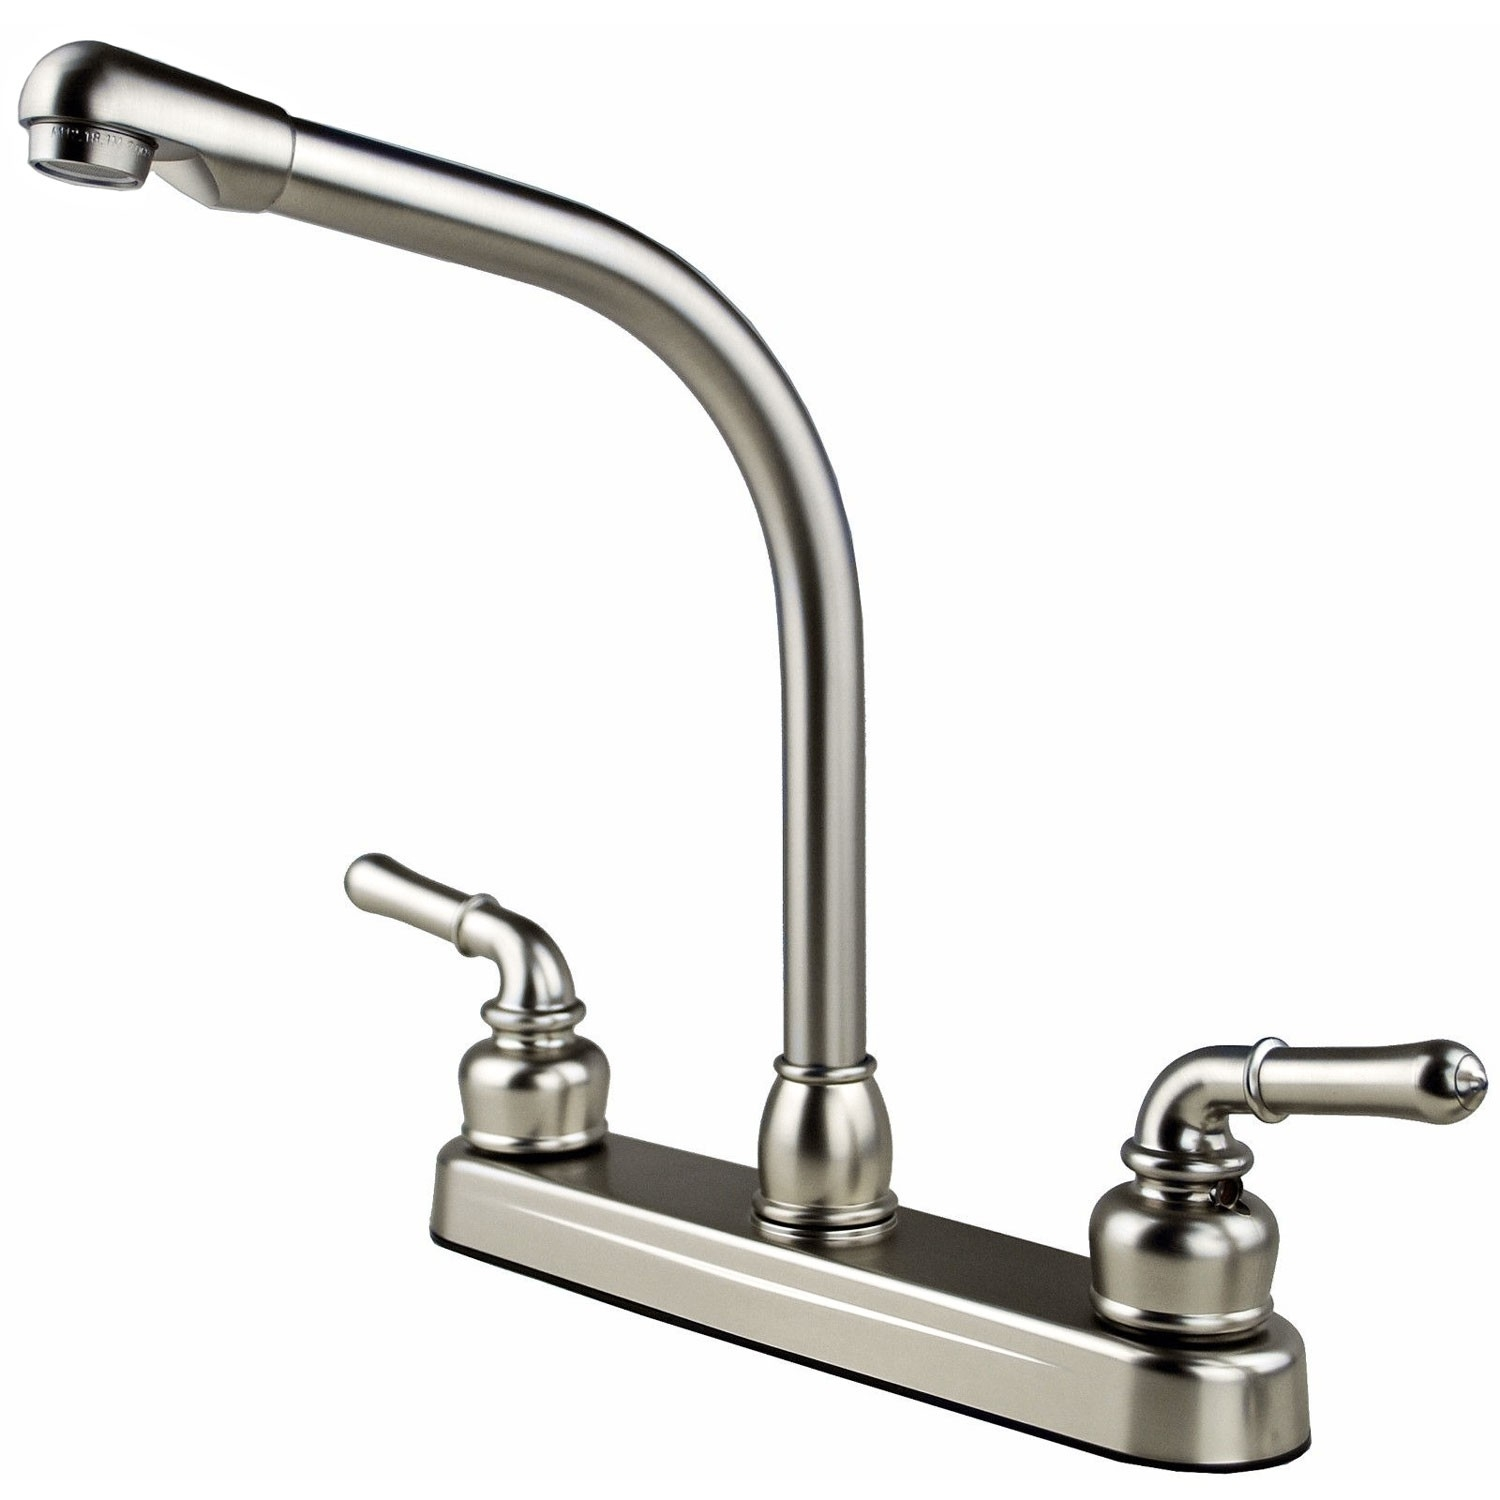 rv kitchen sinks and faucets rv kitchen sinks and faucets ultra faucets rv mobile home trailer kitchen sink faucet 1500 x 1500